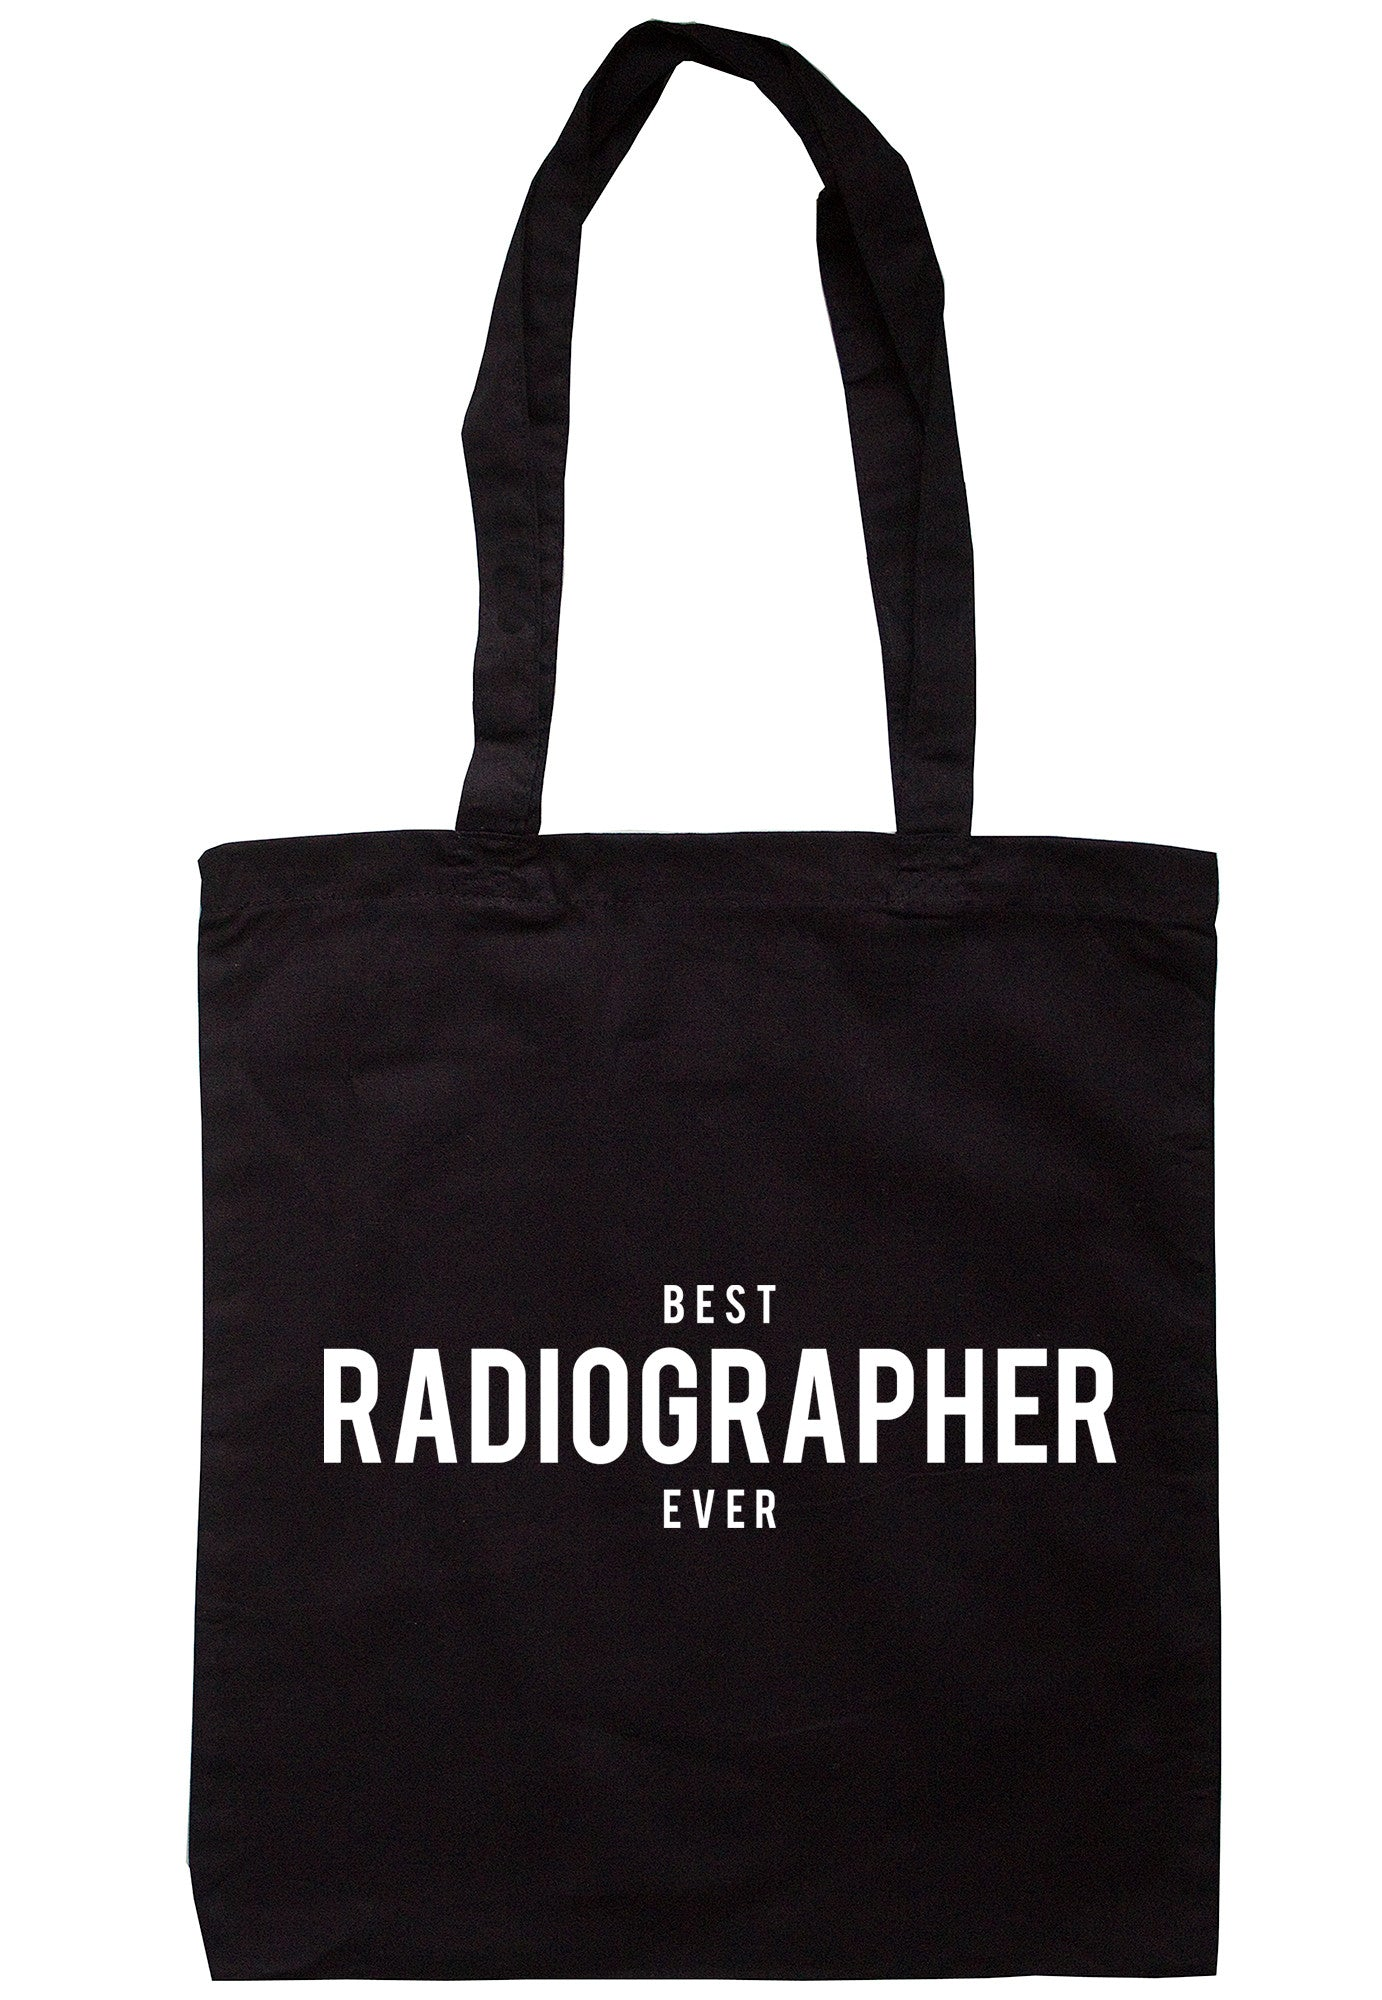 Best Radiographer Ever Tote Bag TB1290